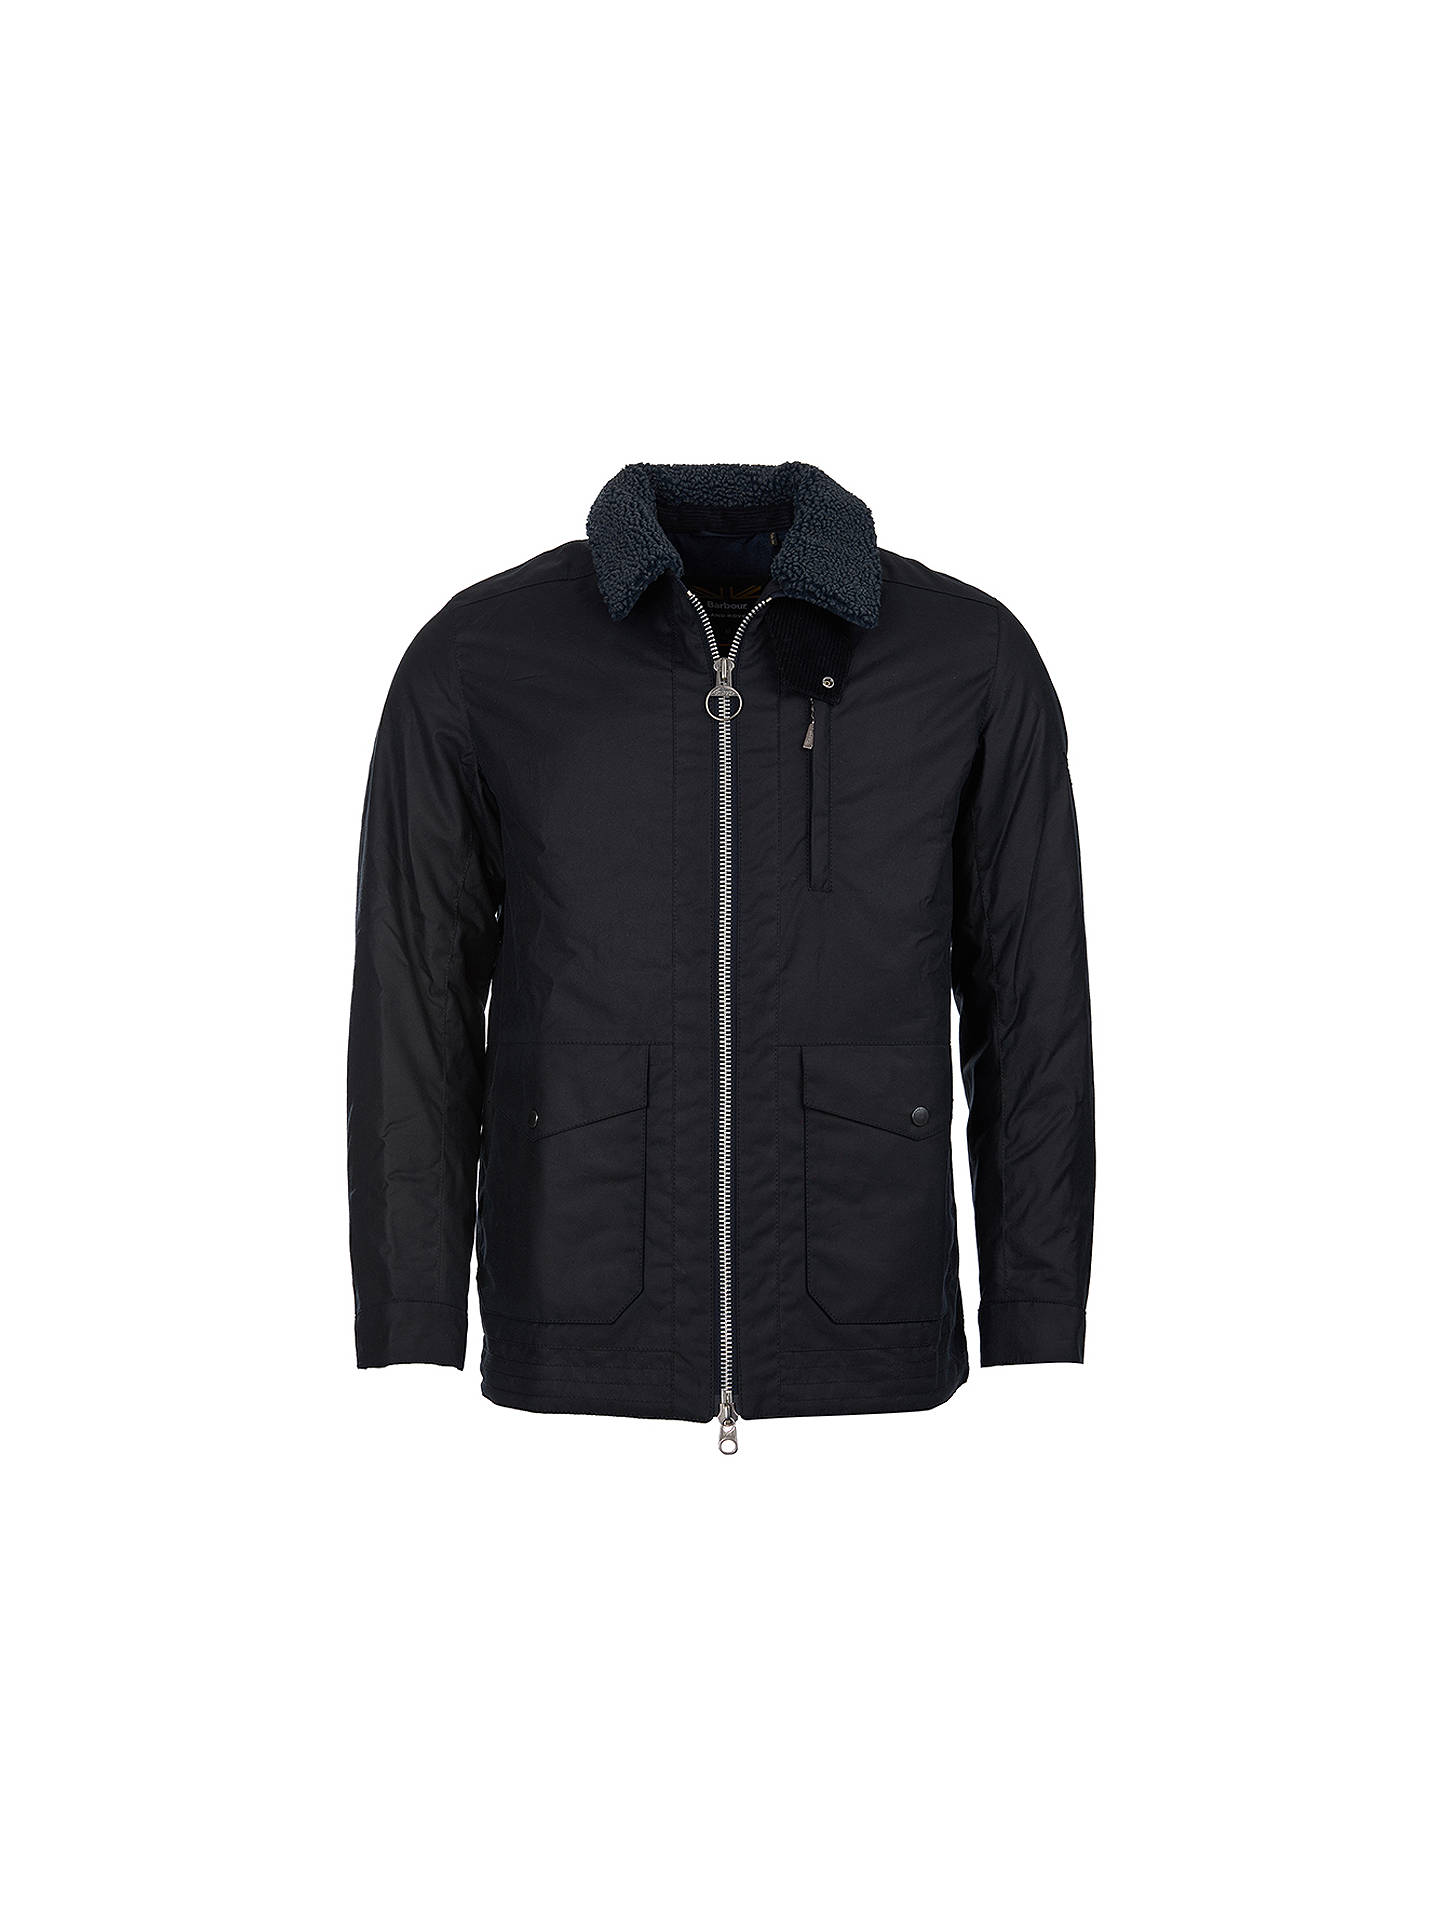 Buy Barbour Land Rover Defender Eden Quilted Jacket, Blue, M Online at johnlewis.com